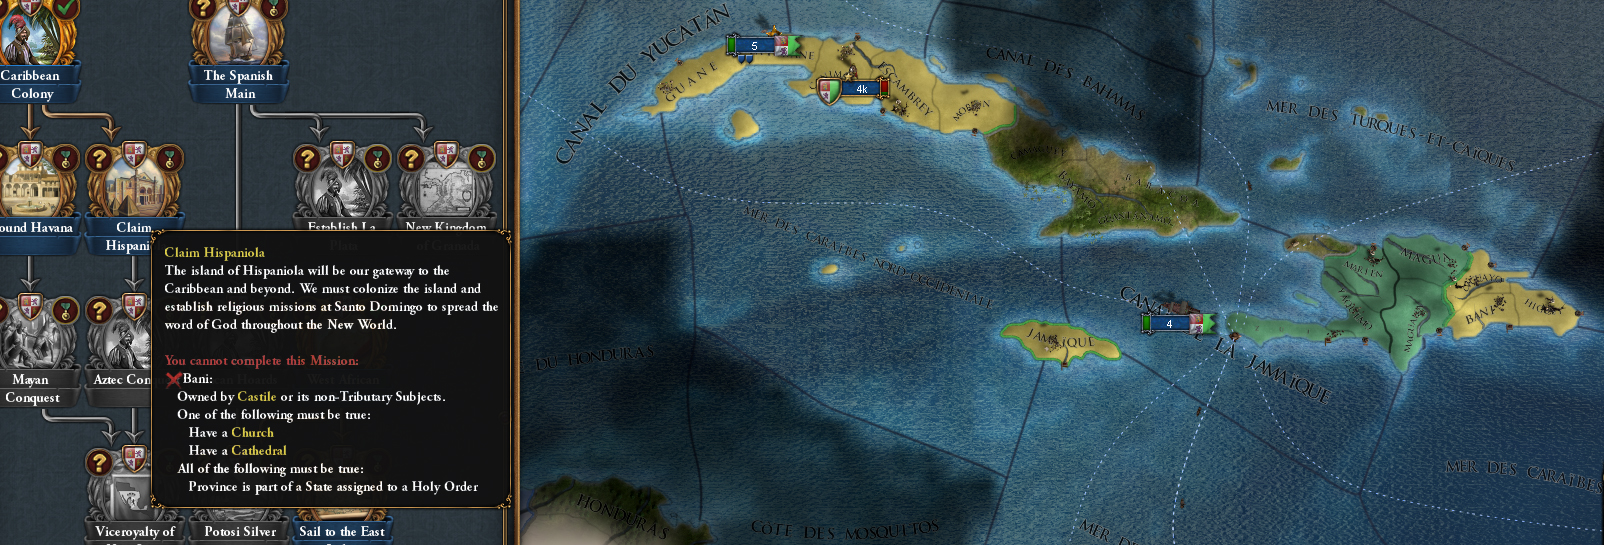 Help with spanish missions/colonial nations | Paradox